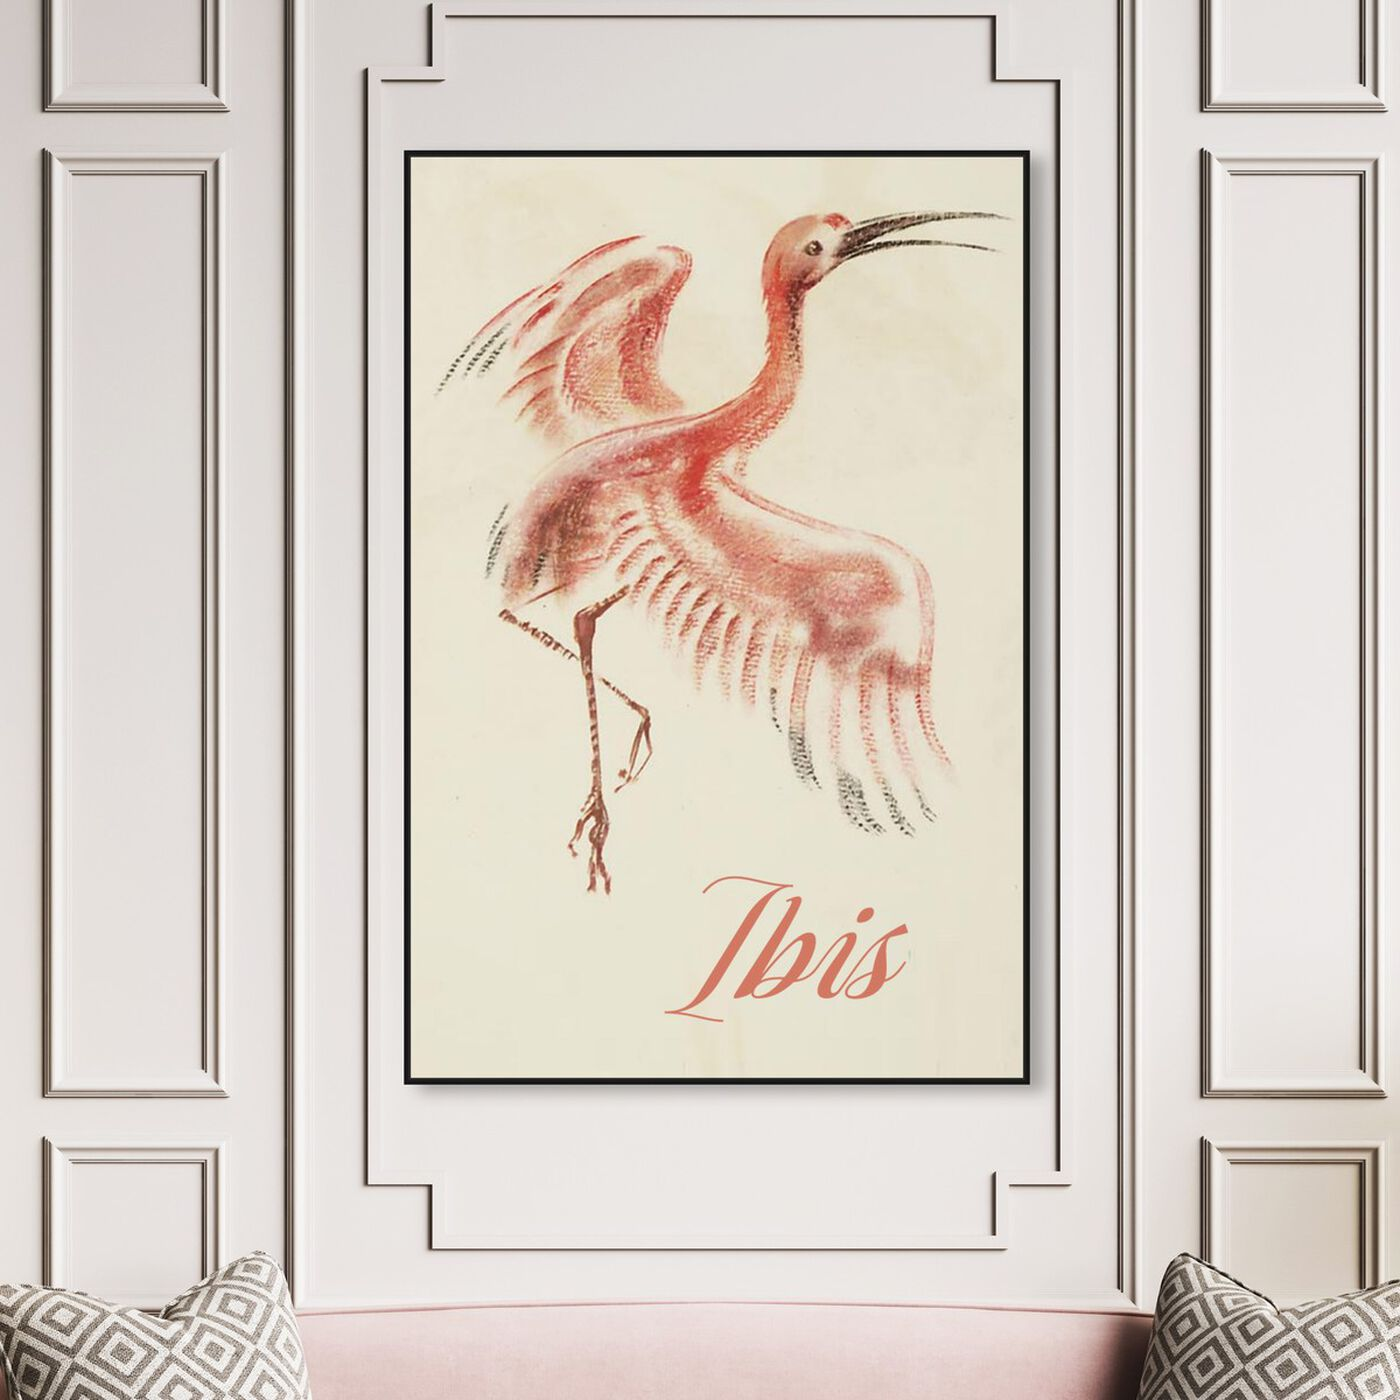 Hanging view of Ibis featuring animals and birds art.